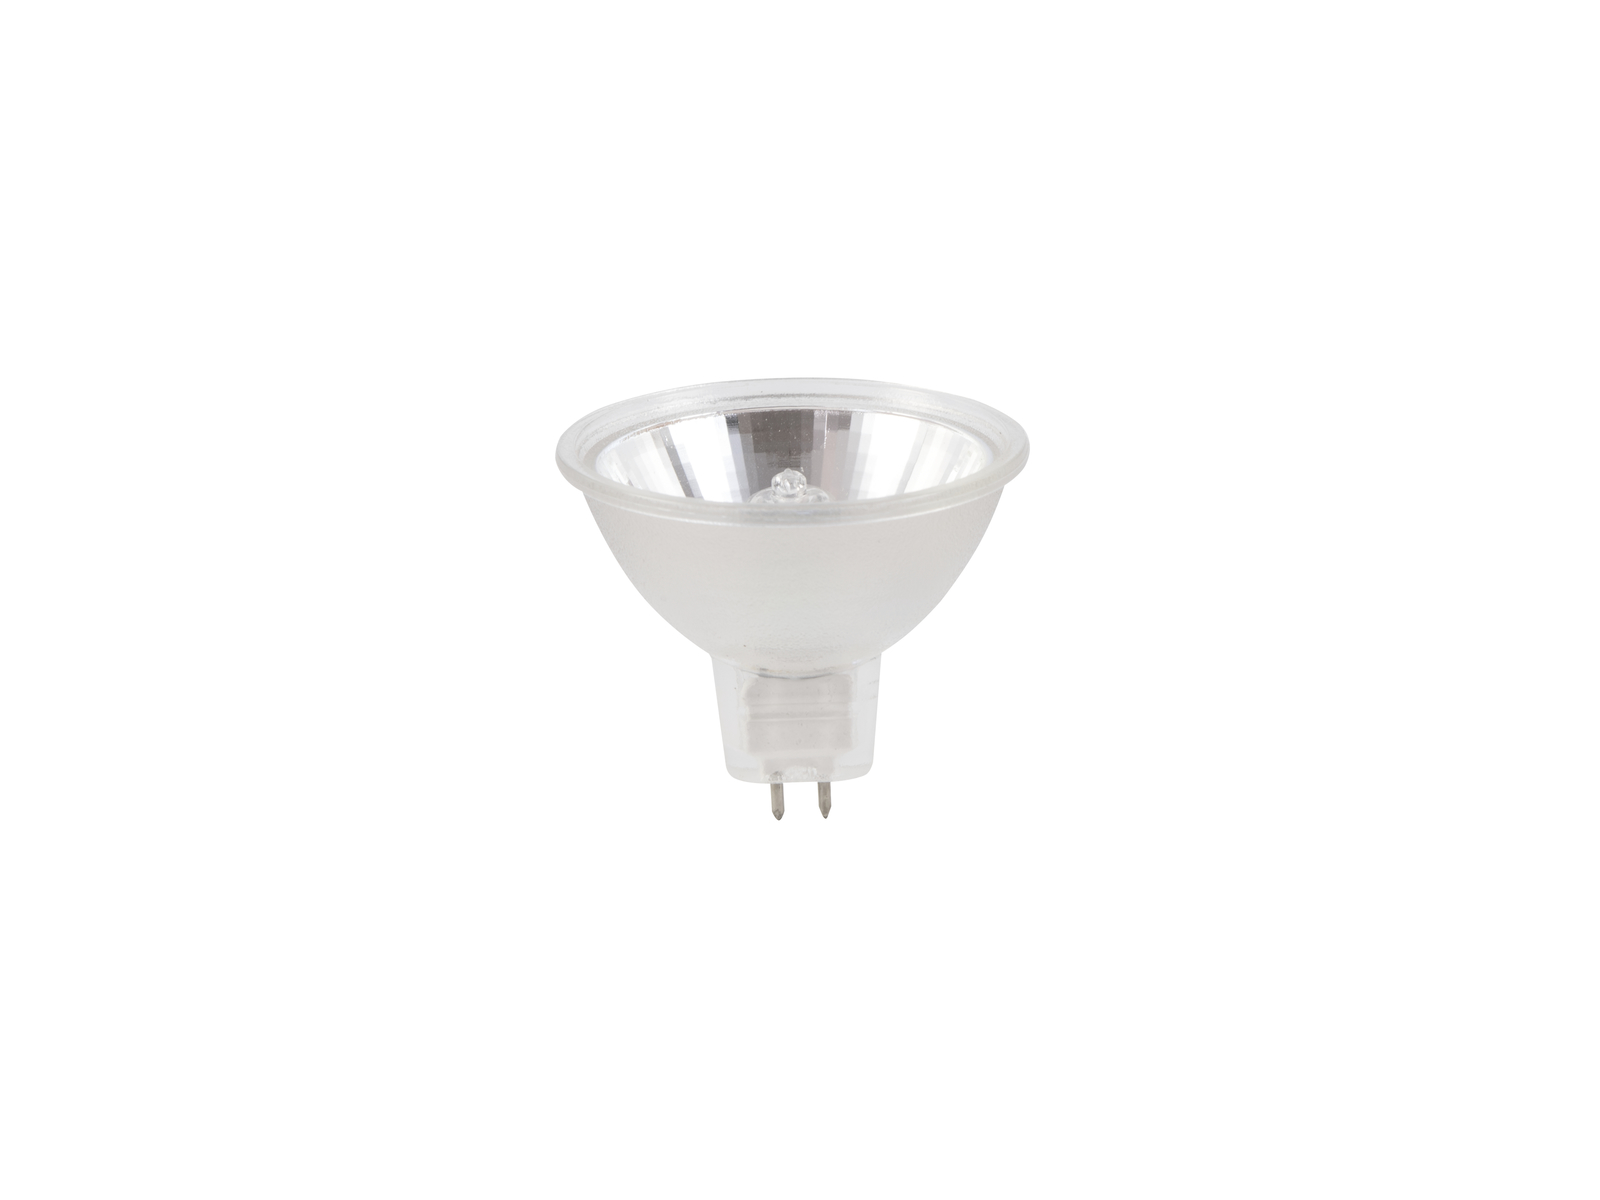 OMNILUX MR-16 24V/50W GX 5.3 SP 60°GIOVANILE EUROPEO A/60